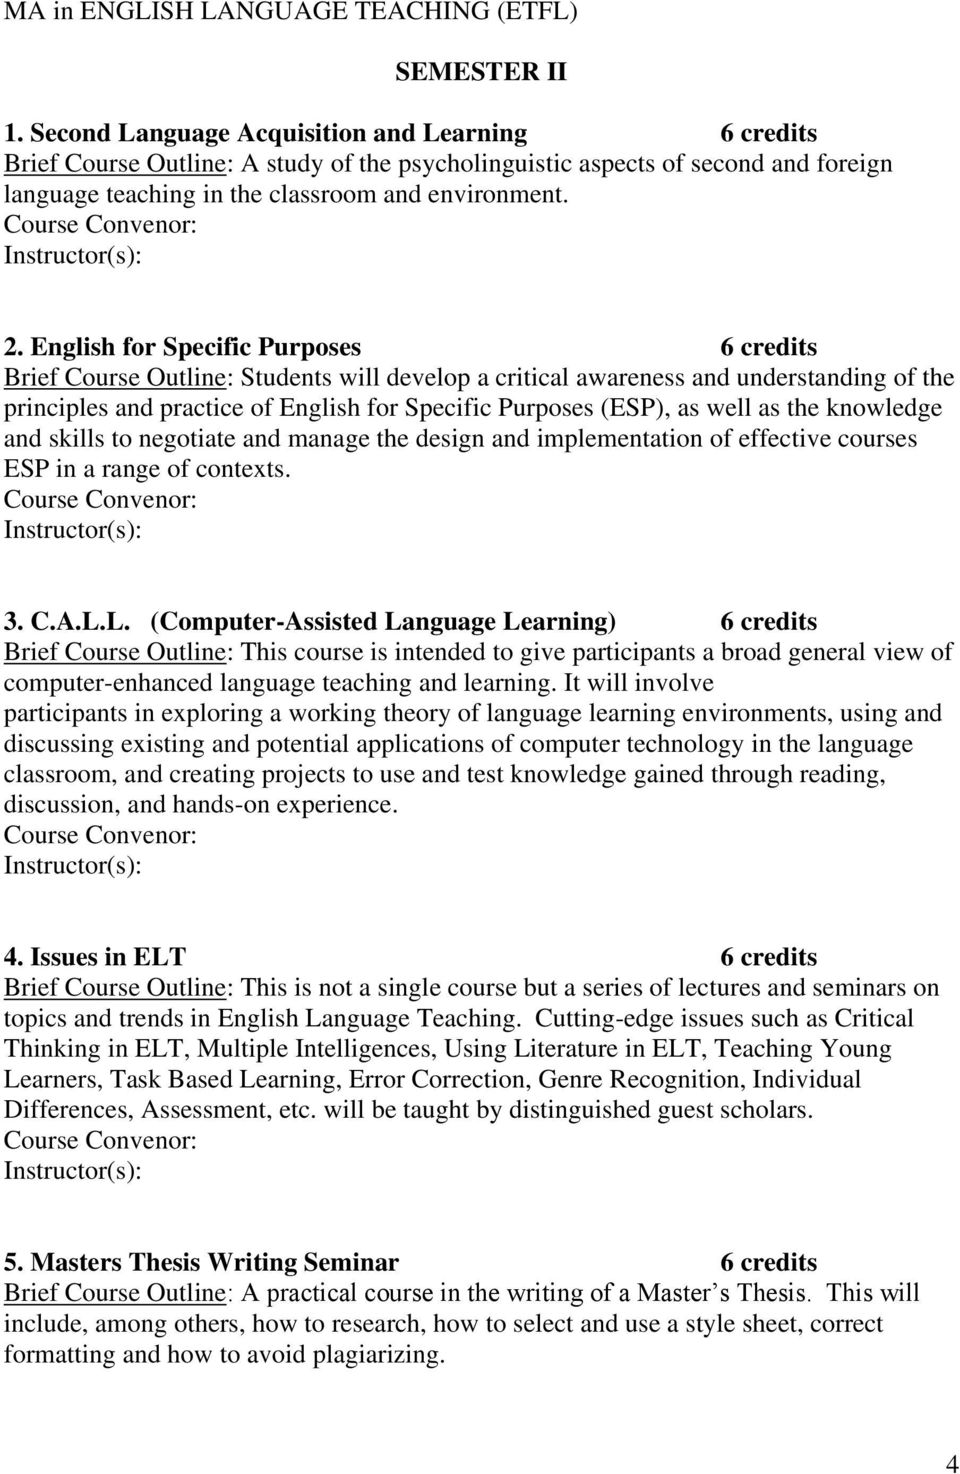 English for Specific Purposes 6 credits Brief Course Outline: Students will develop a critical awareness and understanding of the principles and practice of English for Specific Purposes (ESP), as